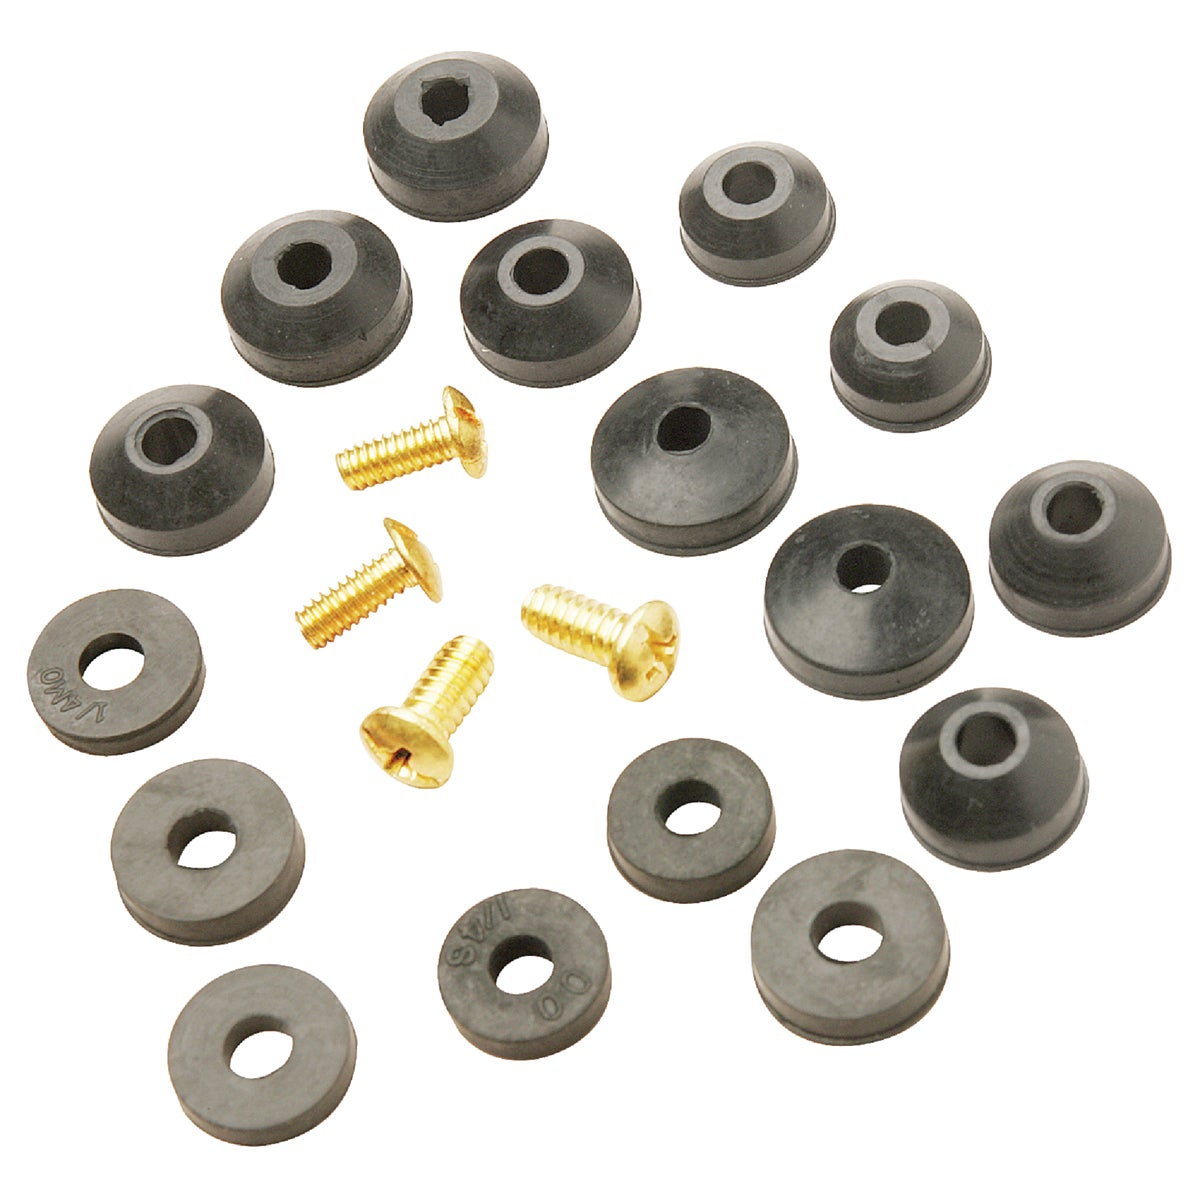 WASHER ASSORTMENT - 401719 by Plumb Pak/keeney Mfg